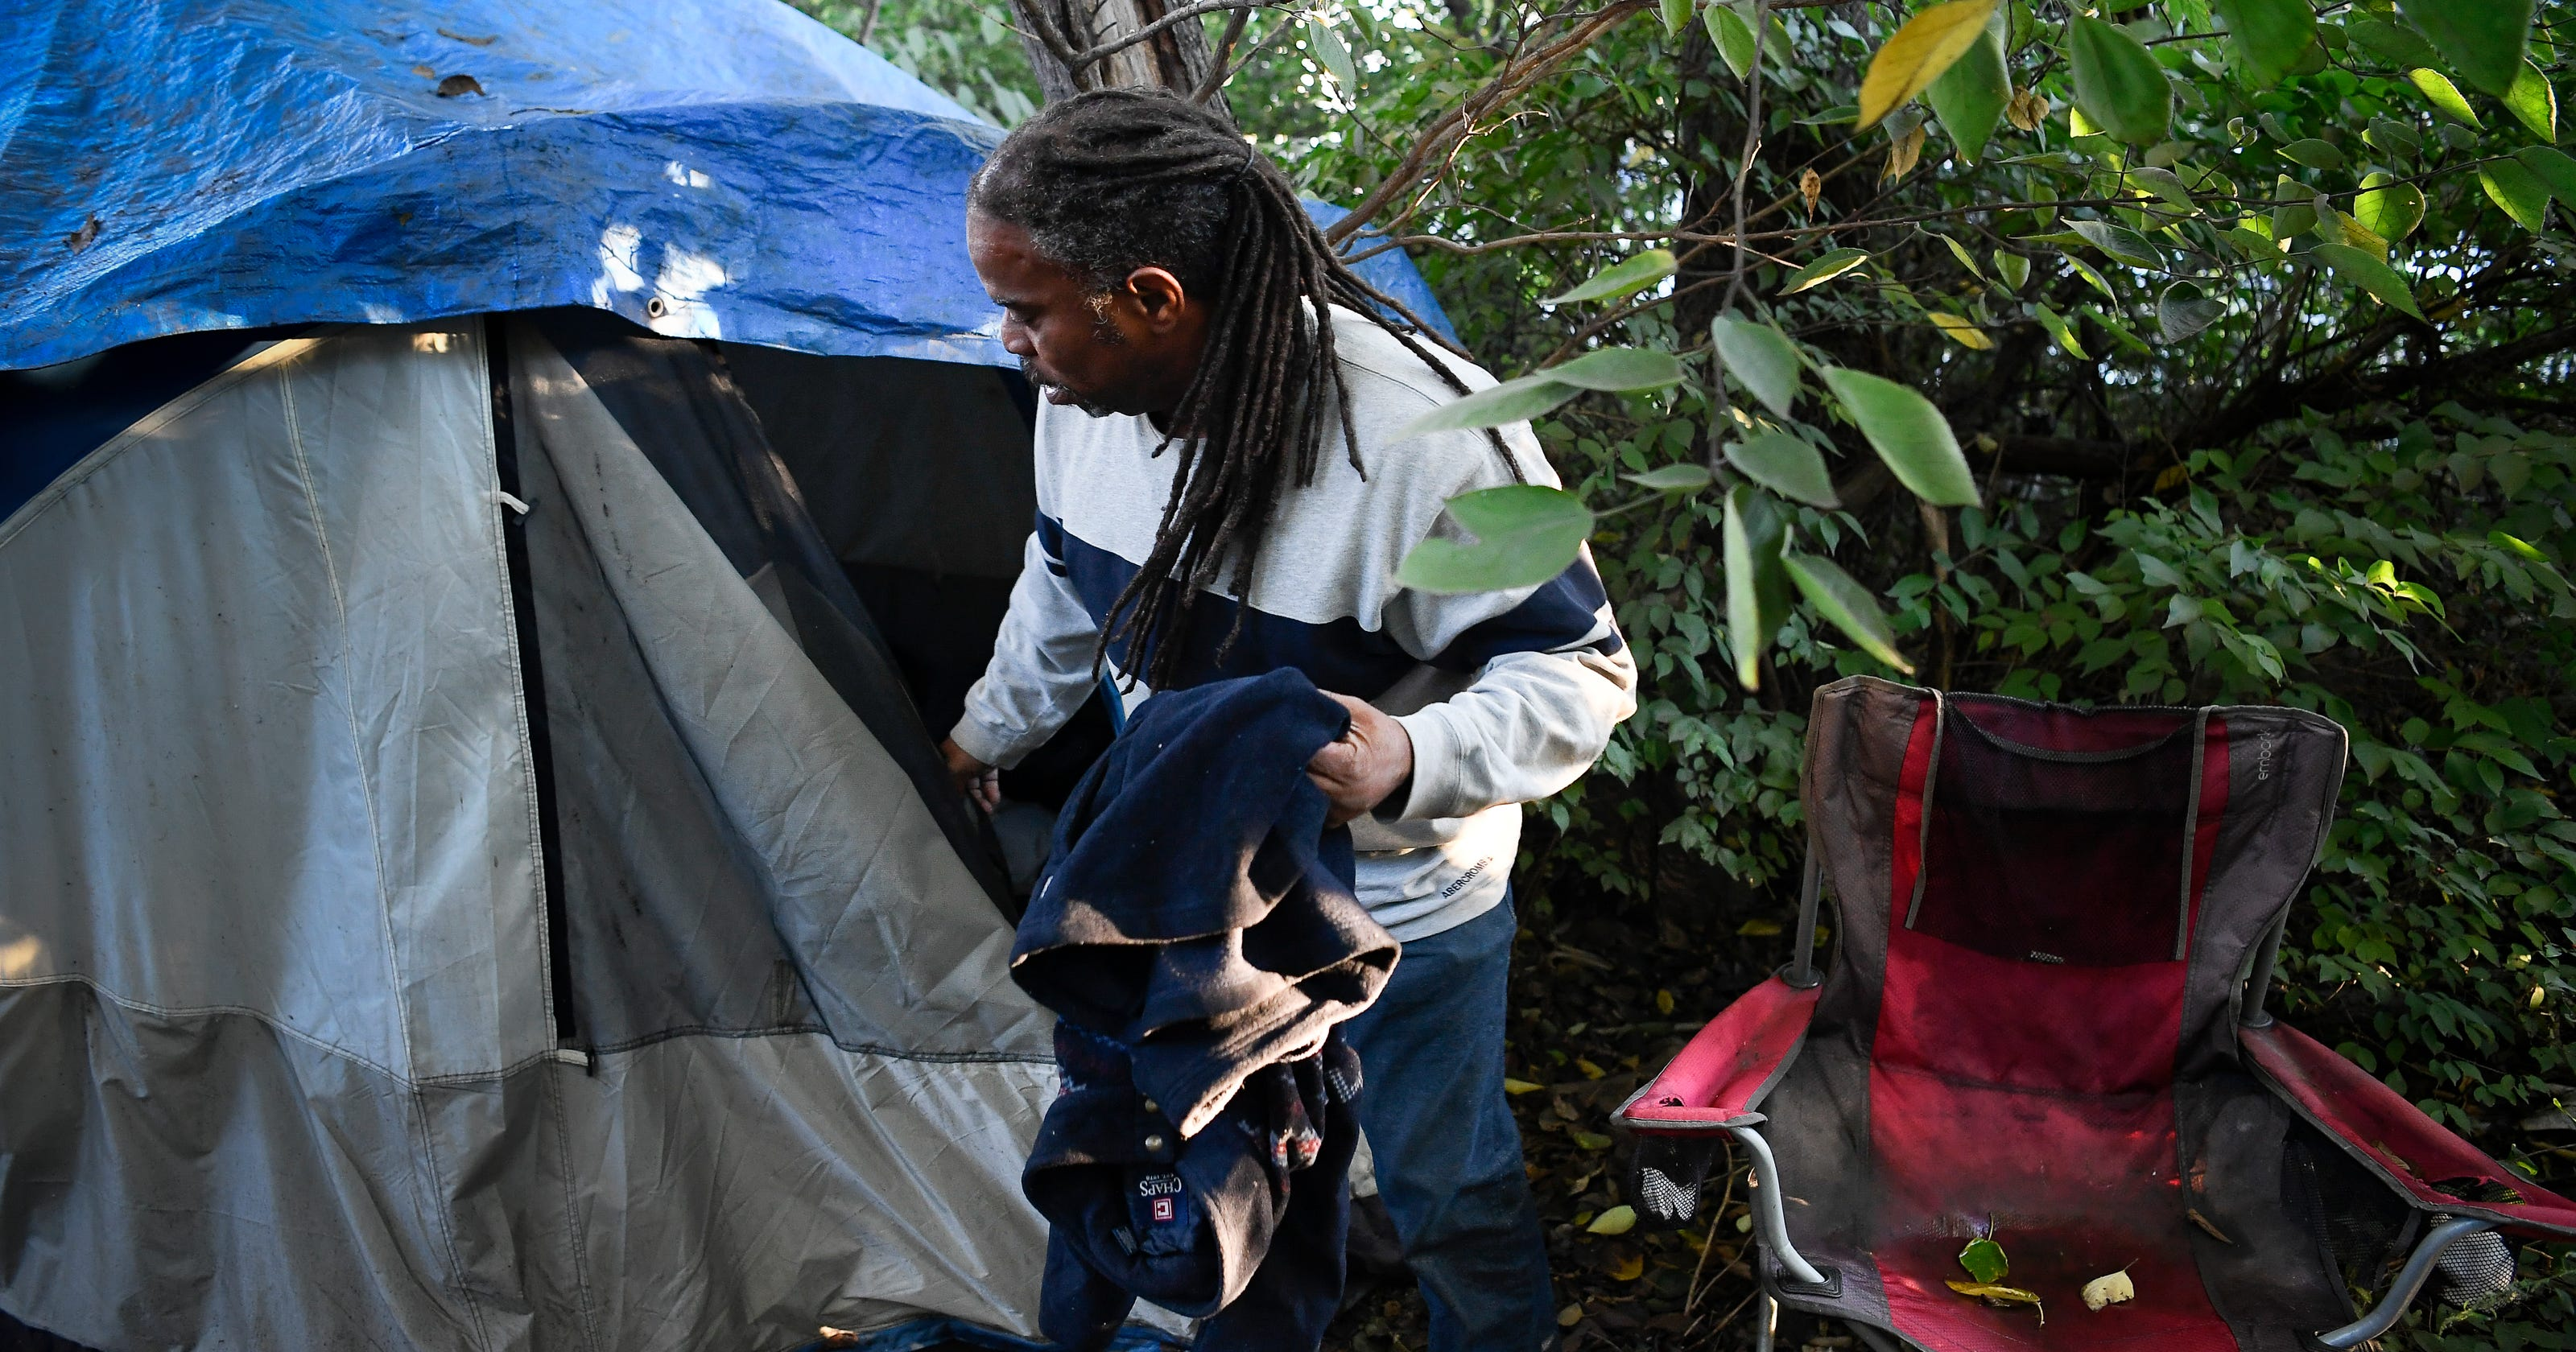 Tennessee Business Search >> As Nashville booms, homeless fall through the cracks